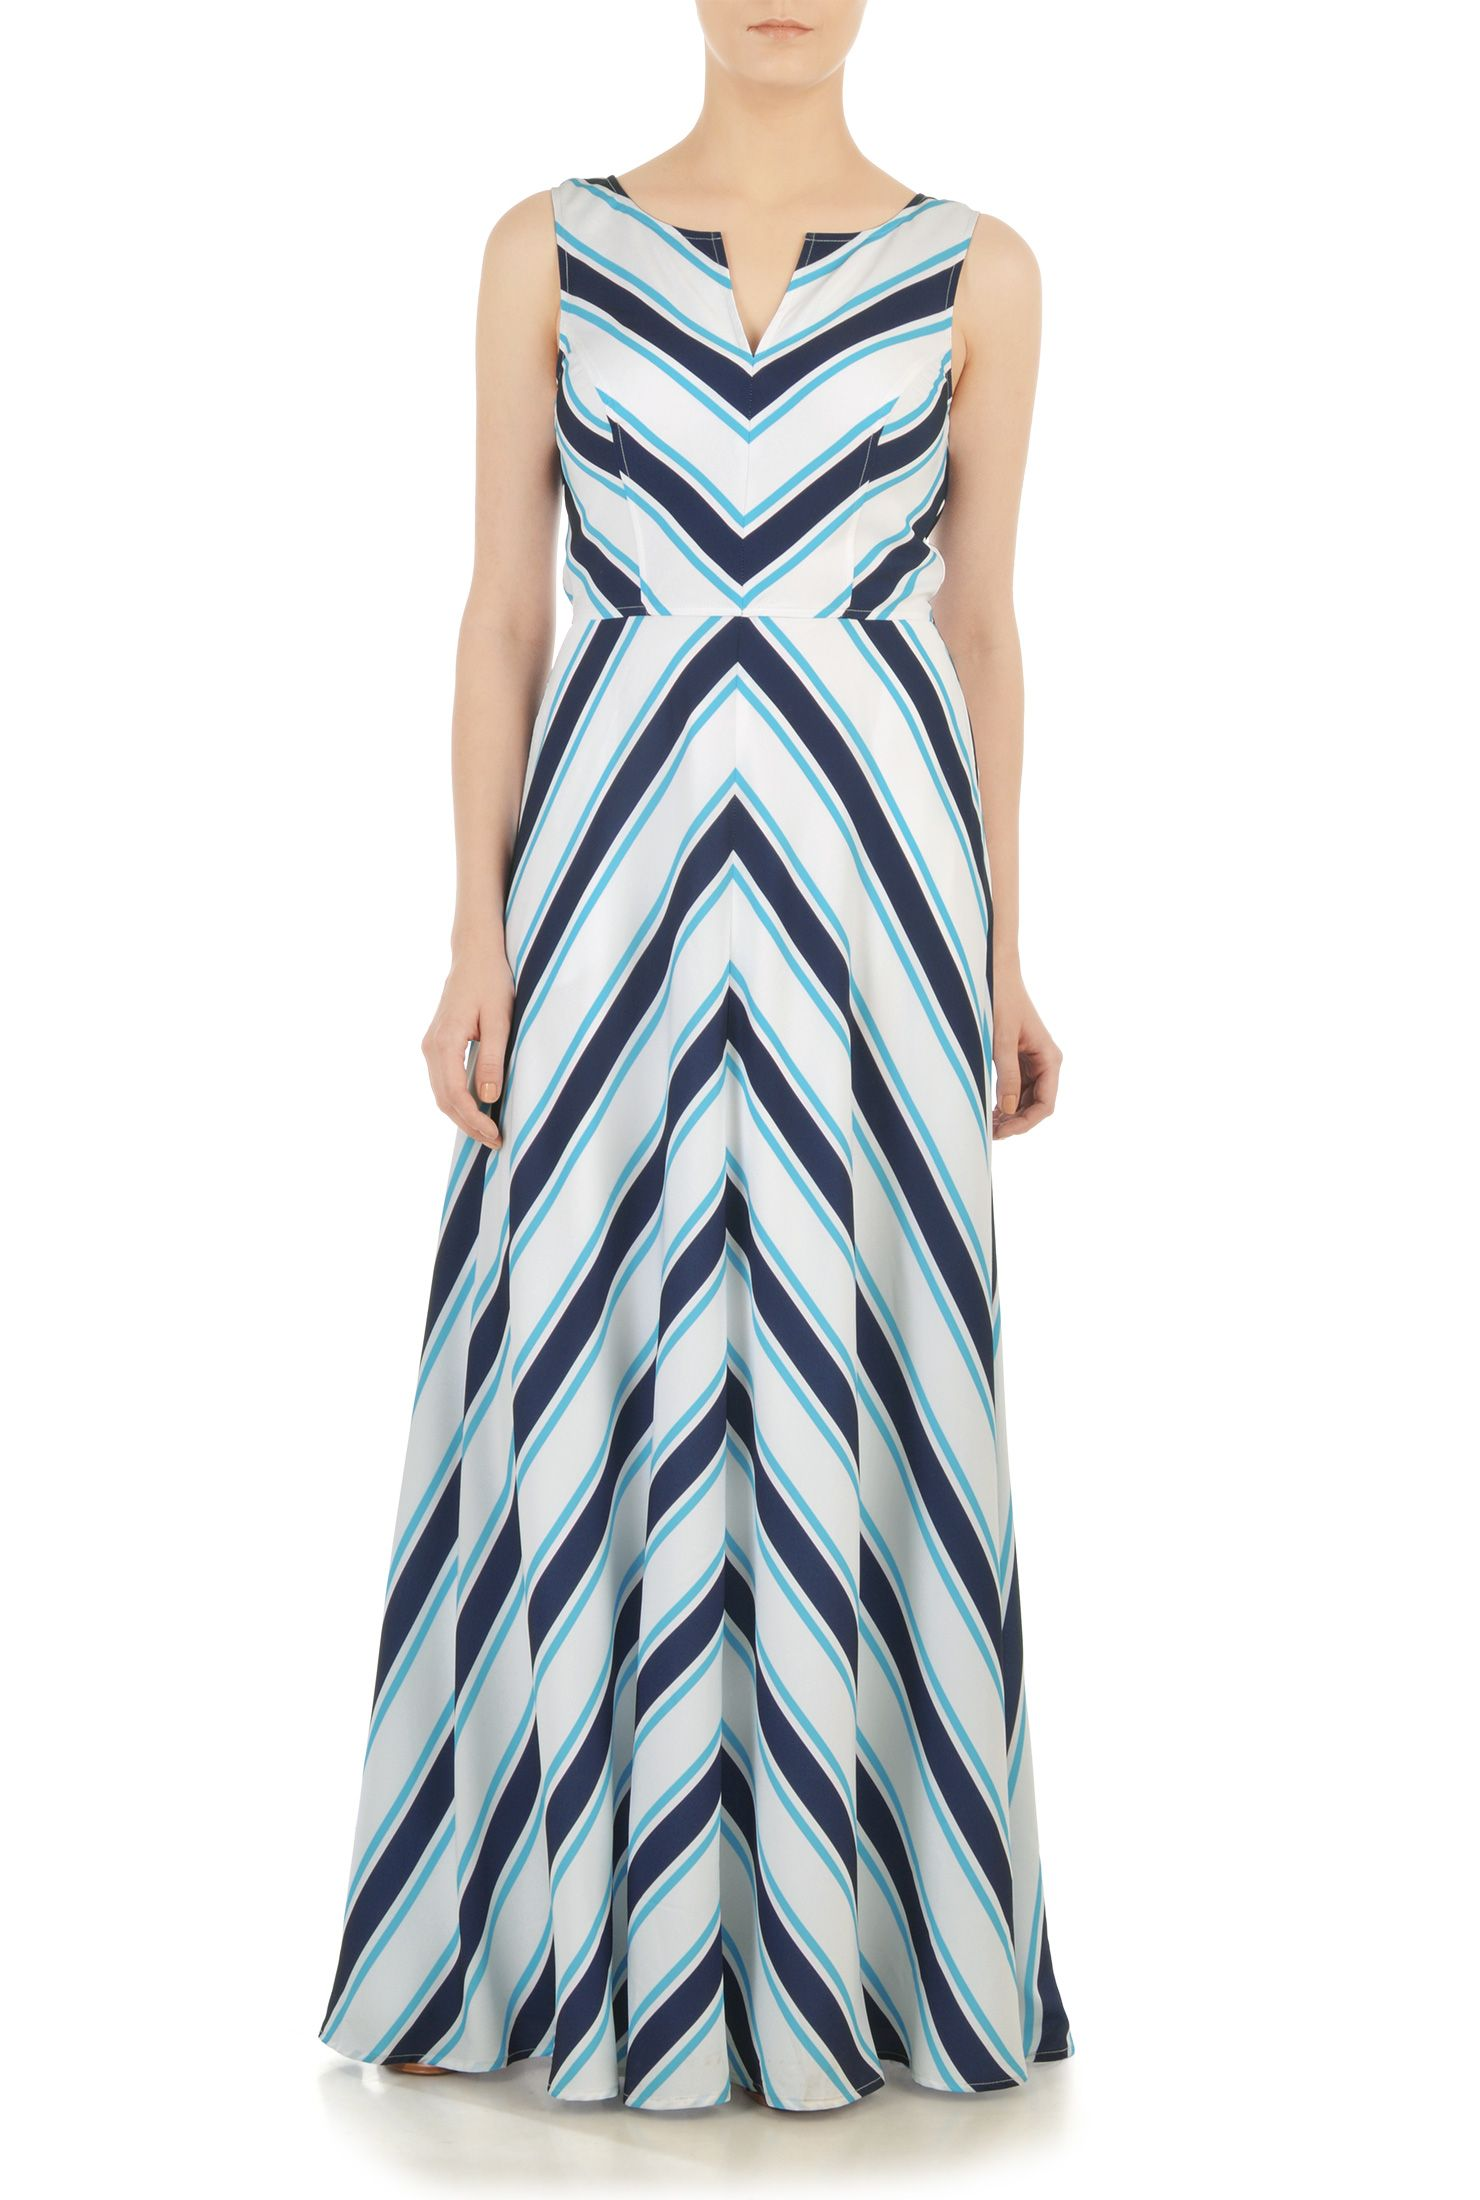 Chevron stripe crepe maxi dress   Casual gowns, Crepes and Maxi dresses